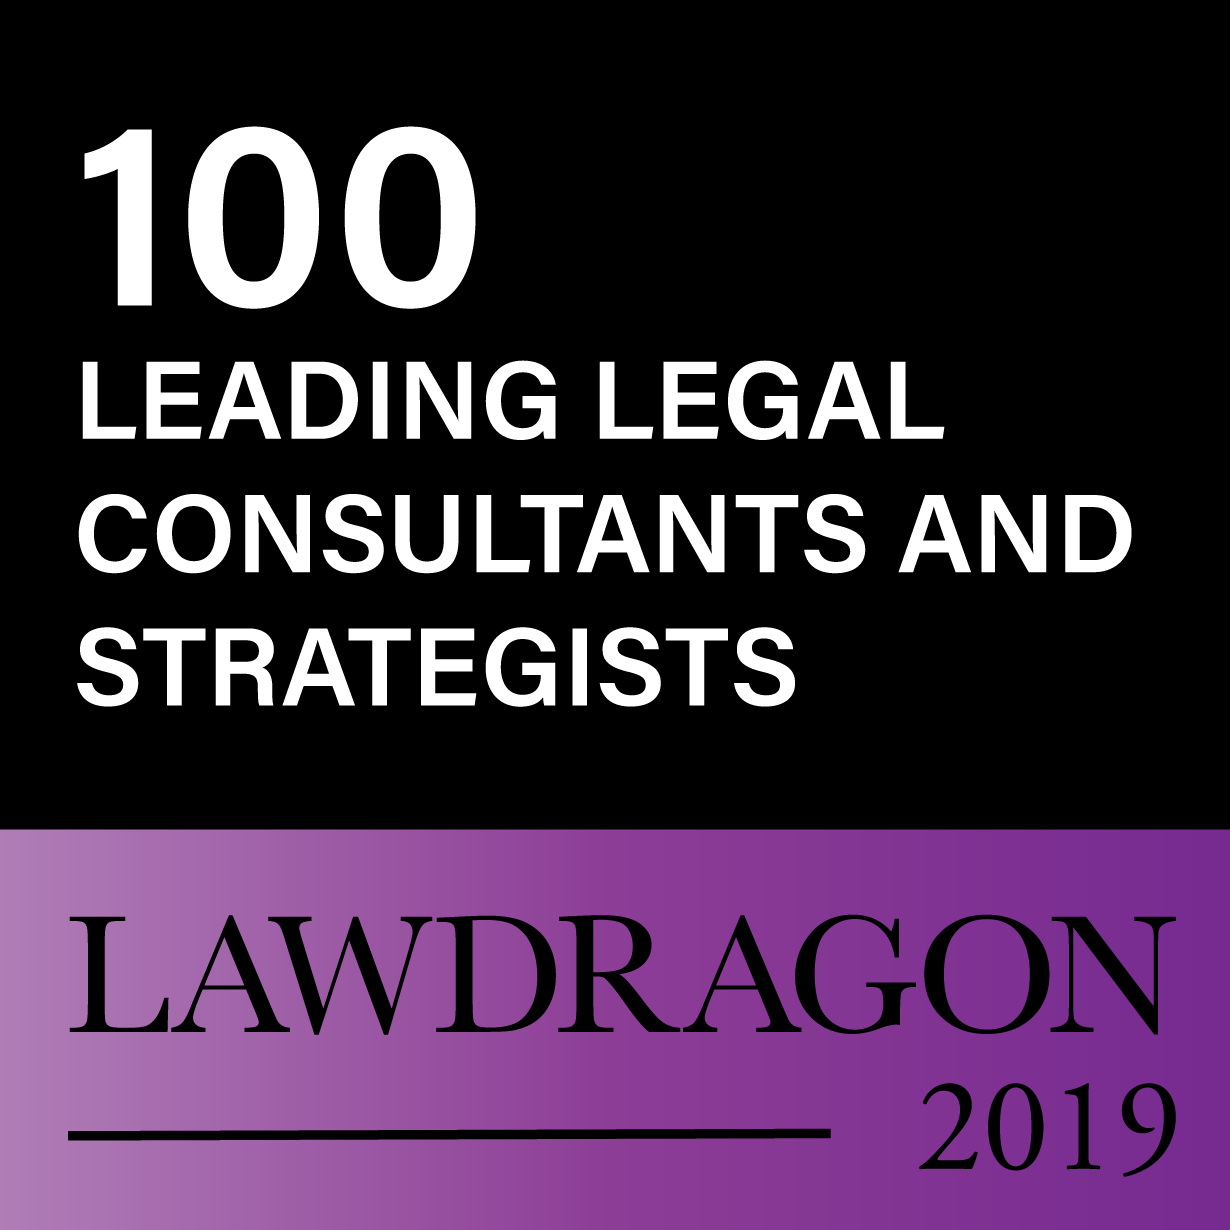 Lawdragon - 100 Leading Legal Consultants and Strategists